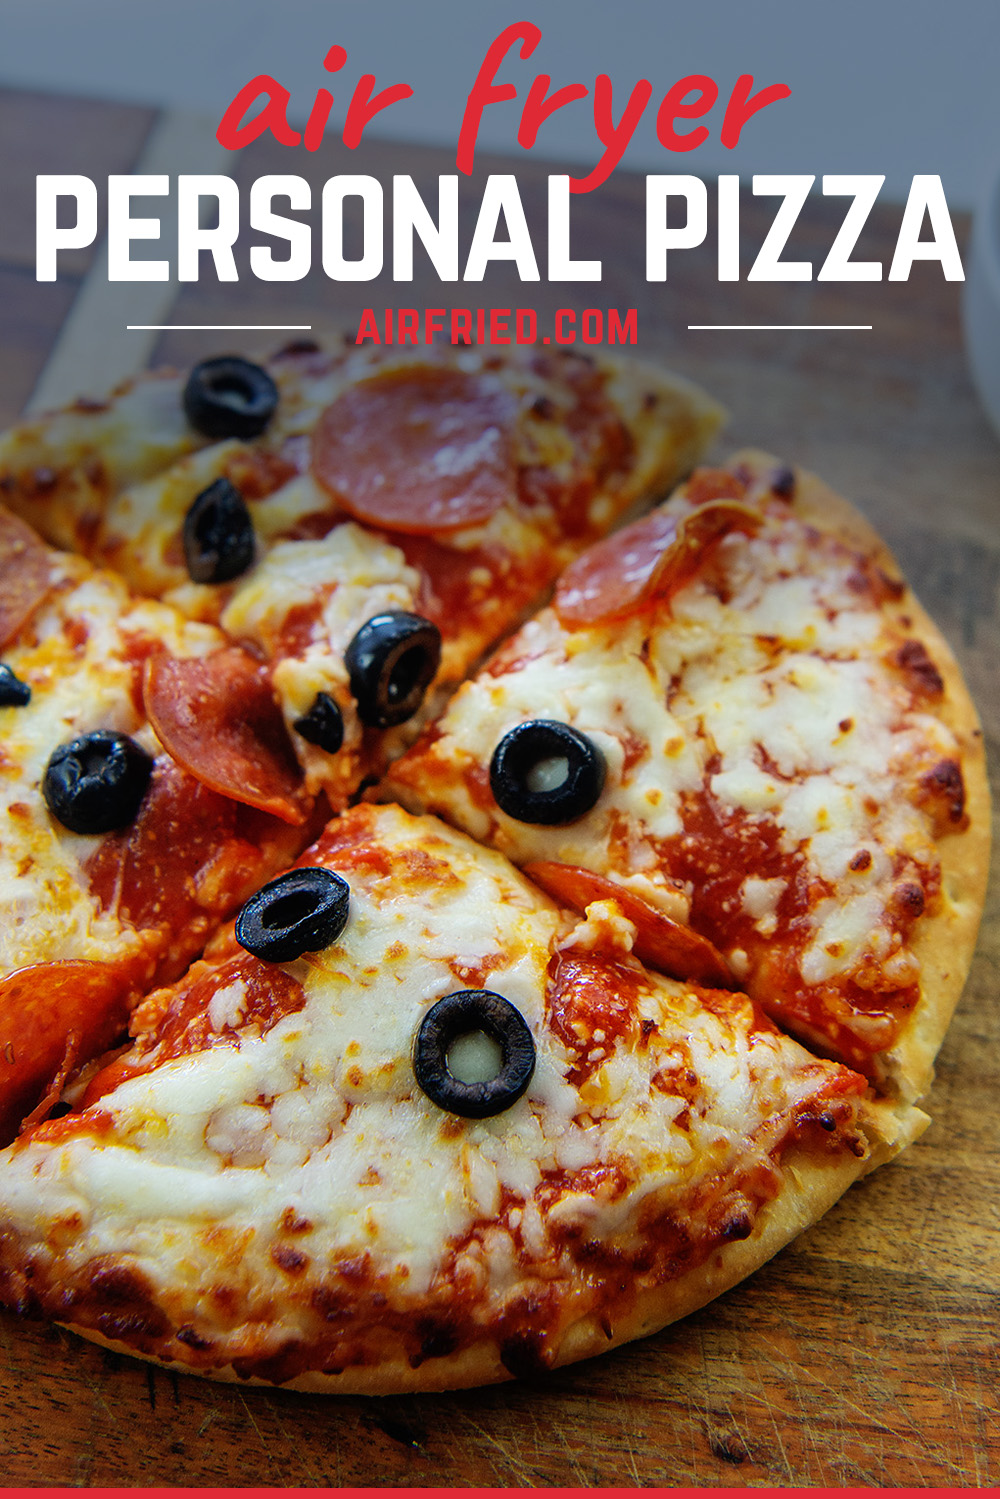 The air fryer personal pizza takes only about 7 minutes to cook!  Plus you get to choose your favorite toppings.